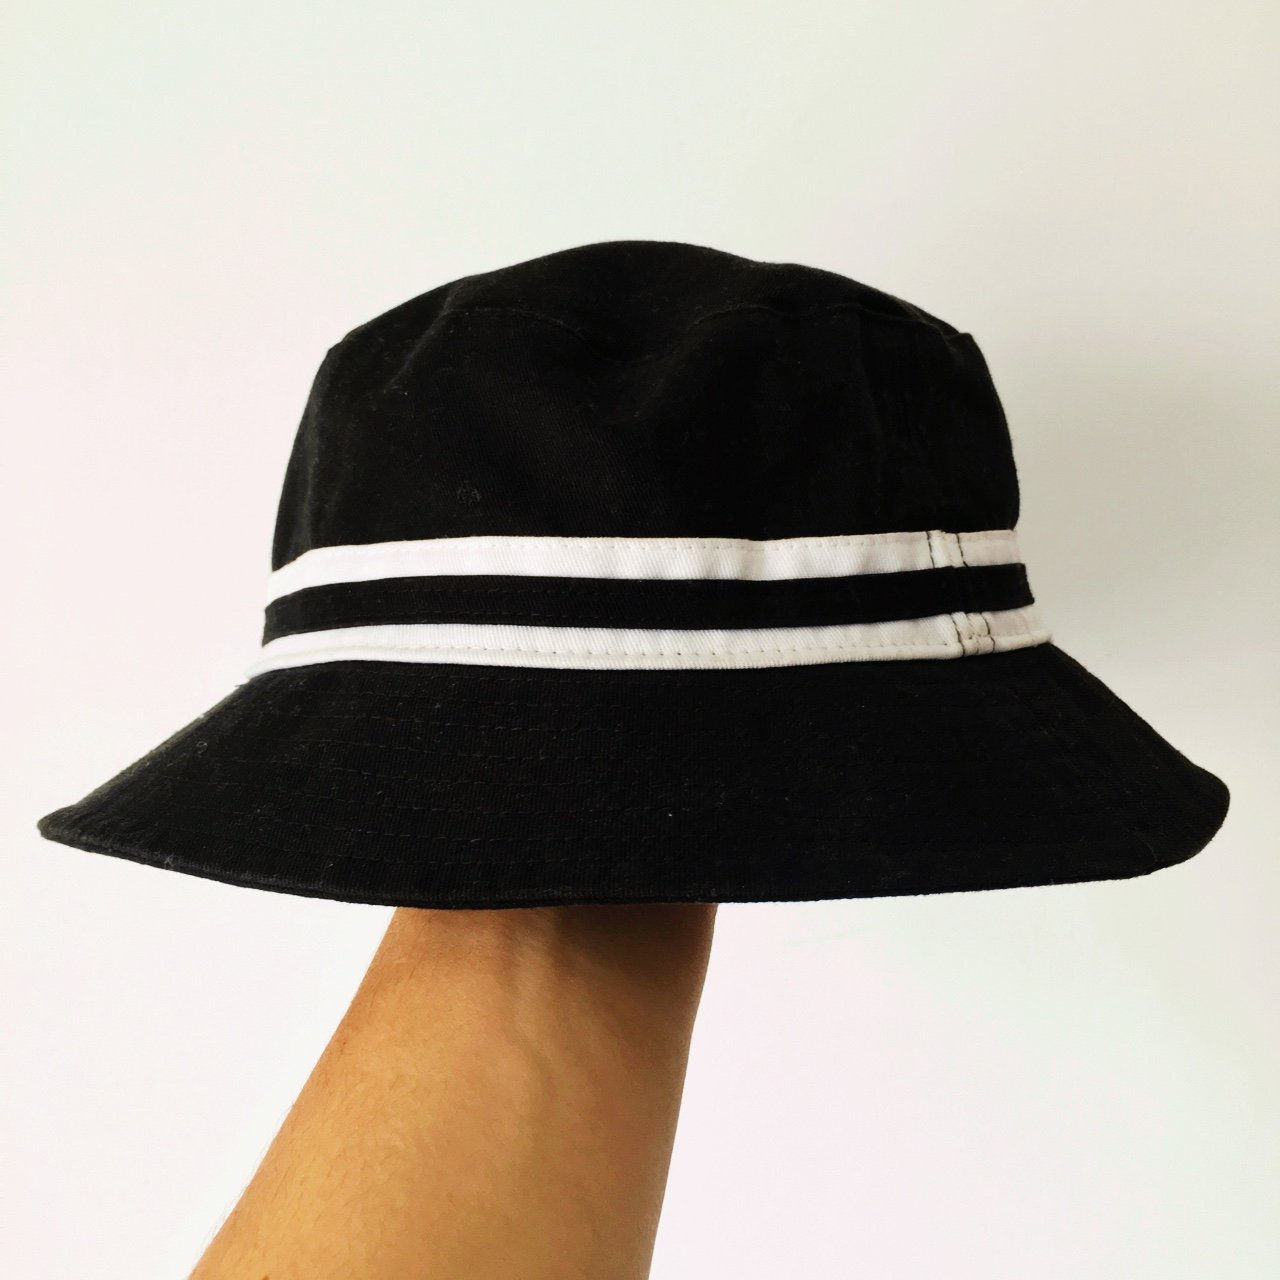 79b055637c8 Bucket hat from Topman. One size perfect for summer. Worn a - Depop